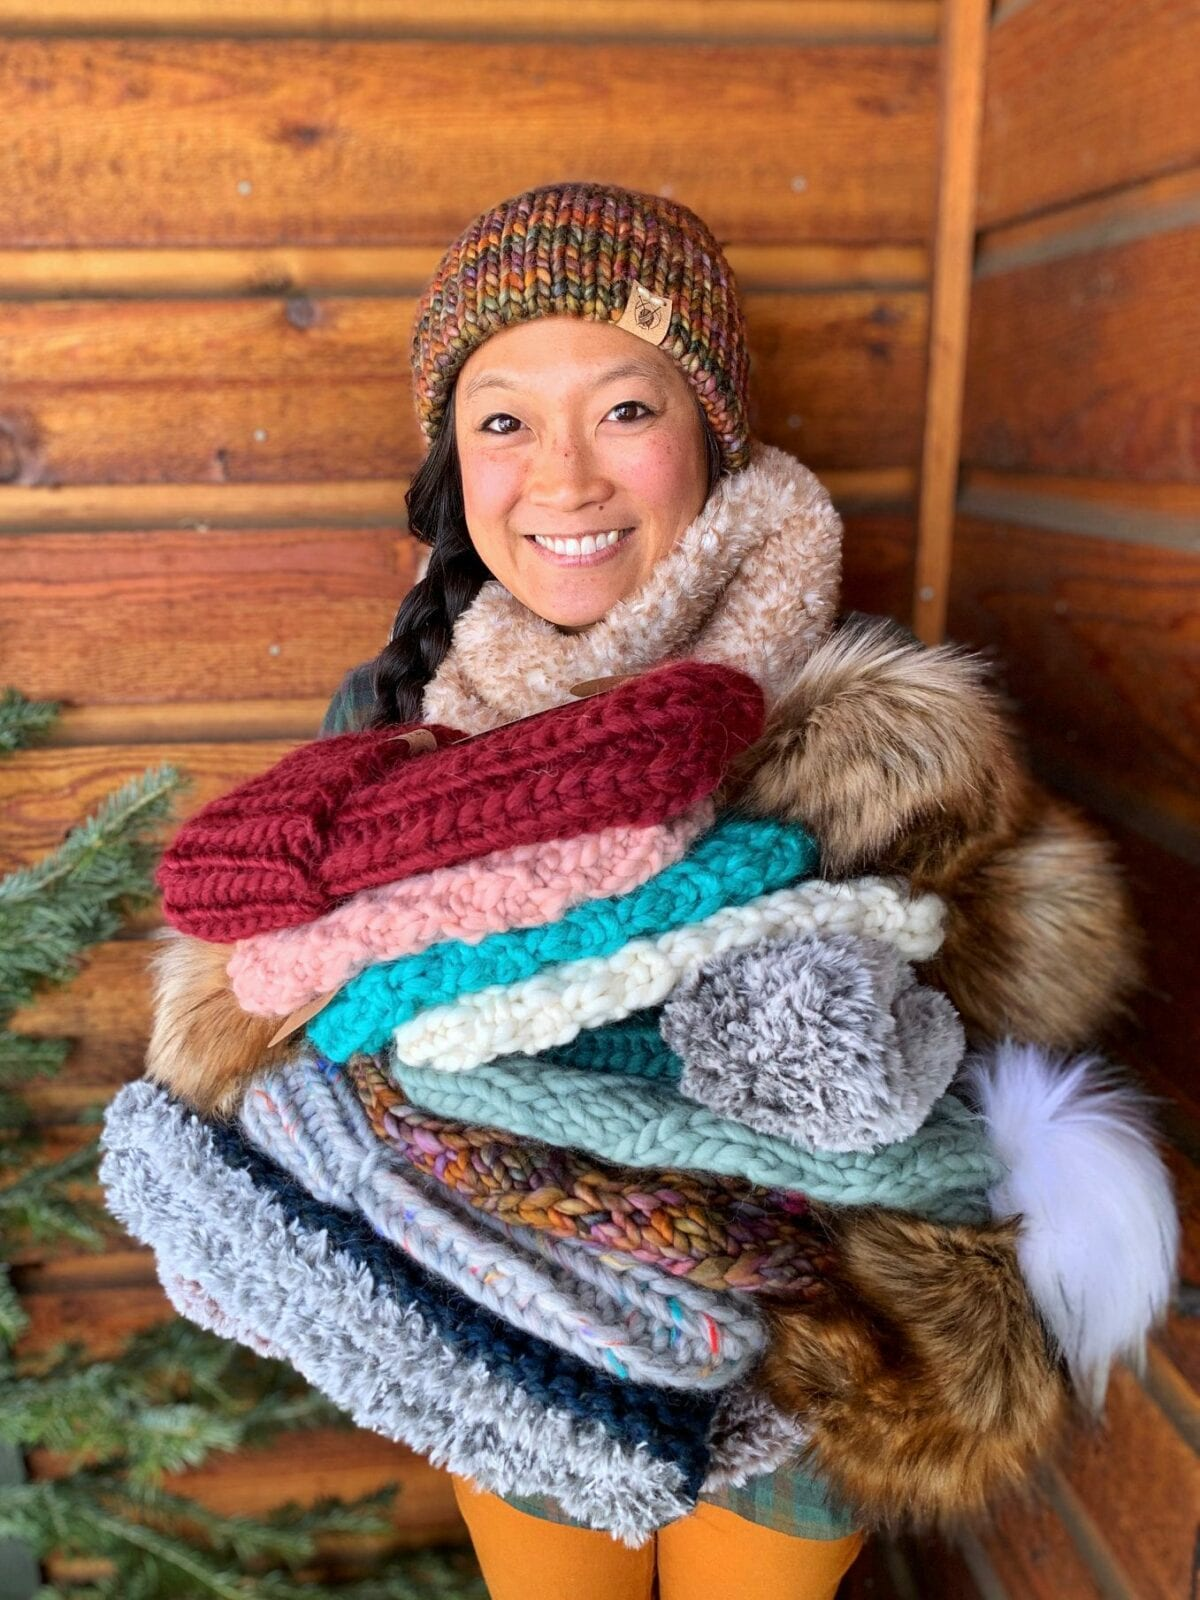 Image of Chereen, the owner, showing off her Smeeny Beanie Knit hats